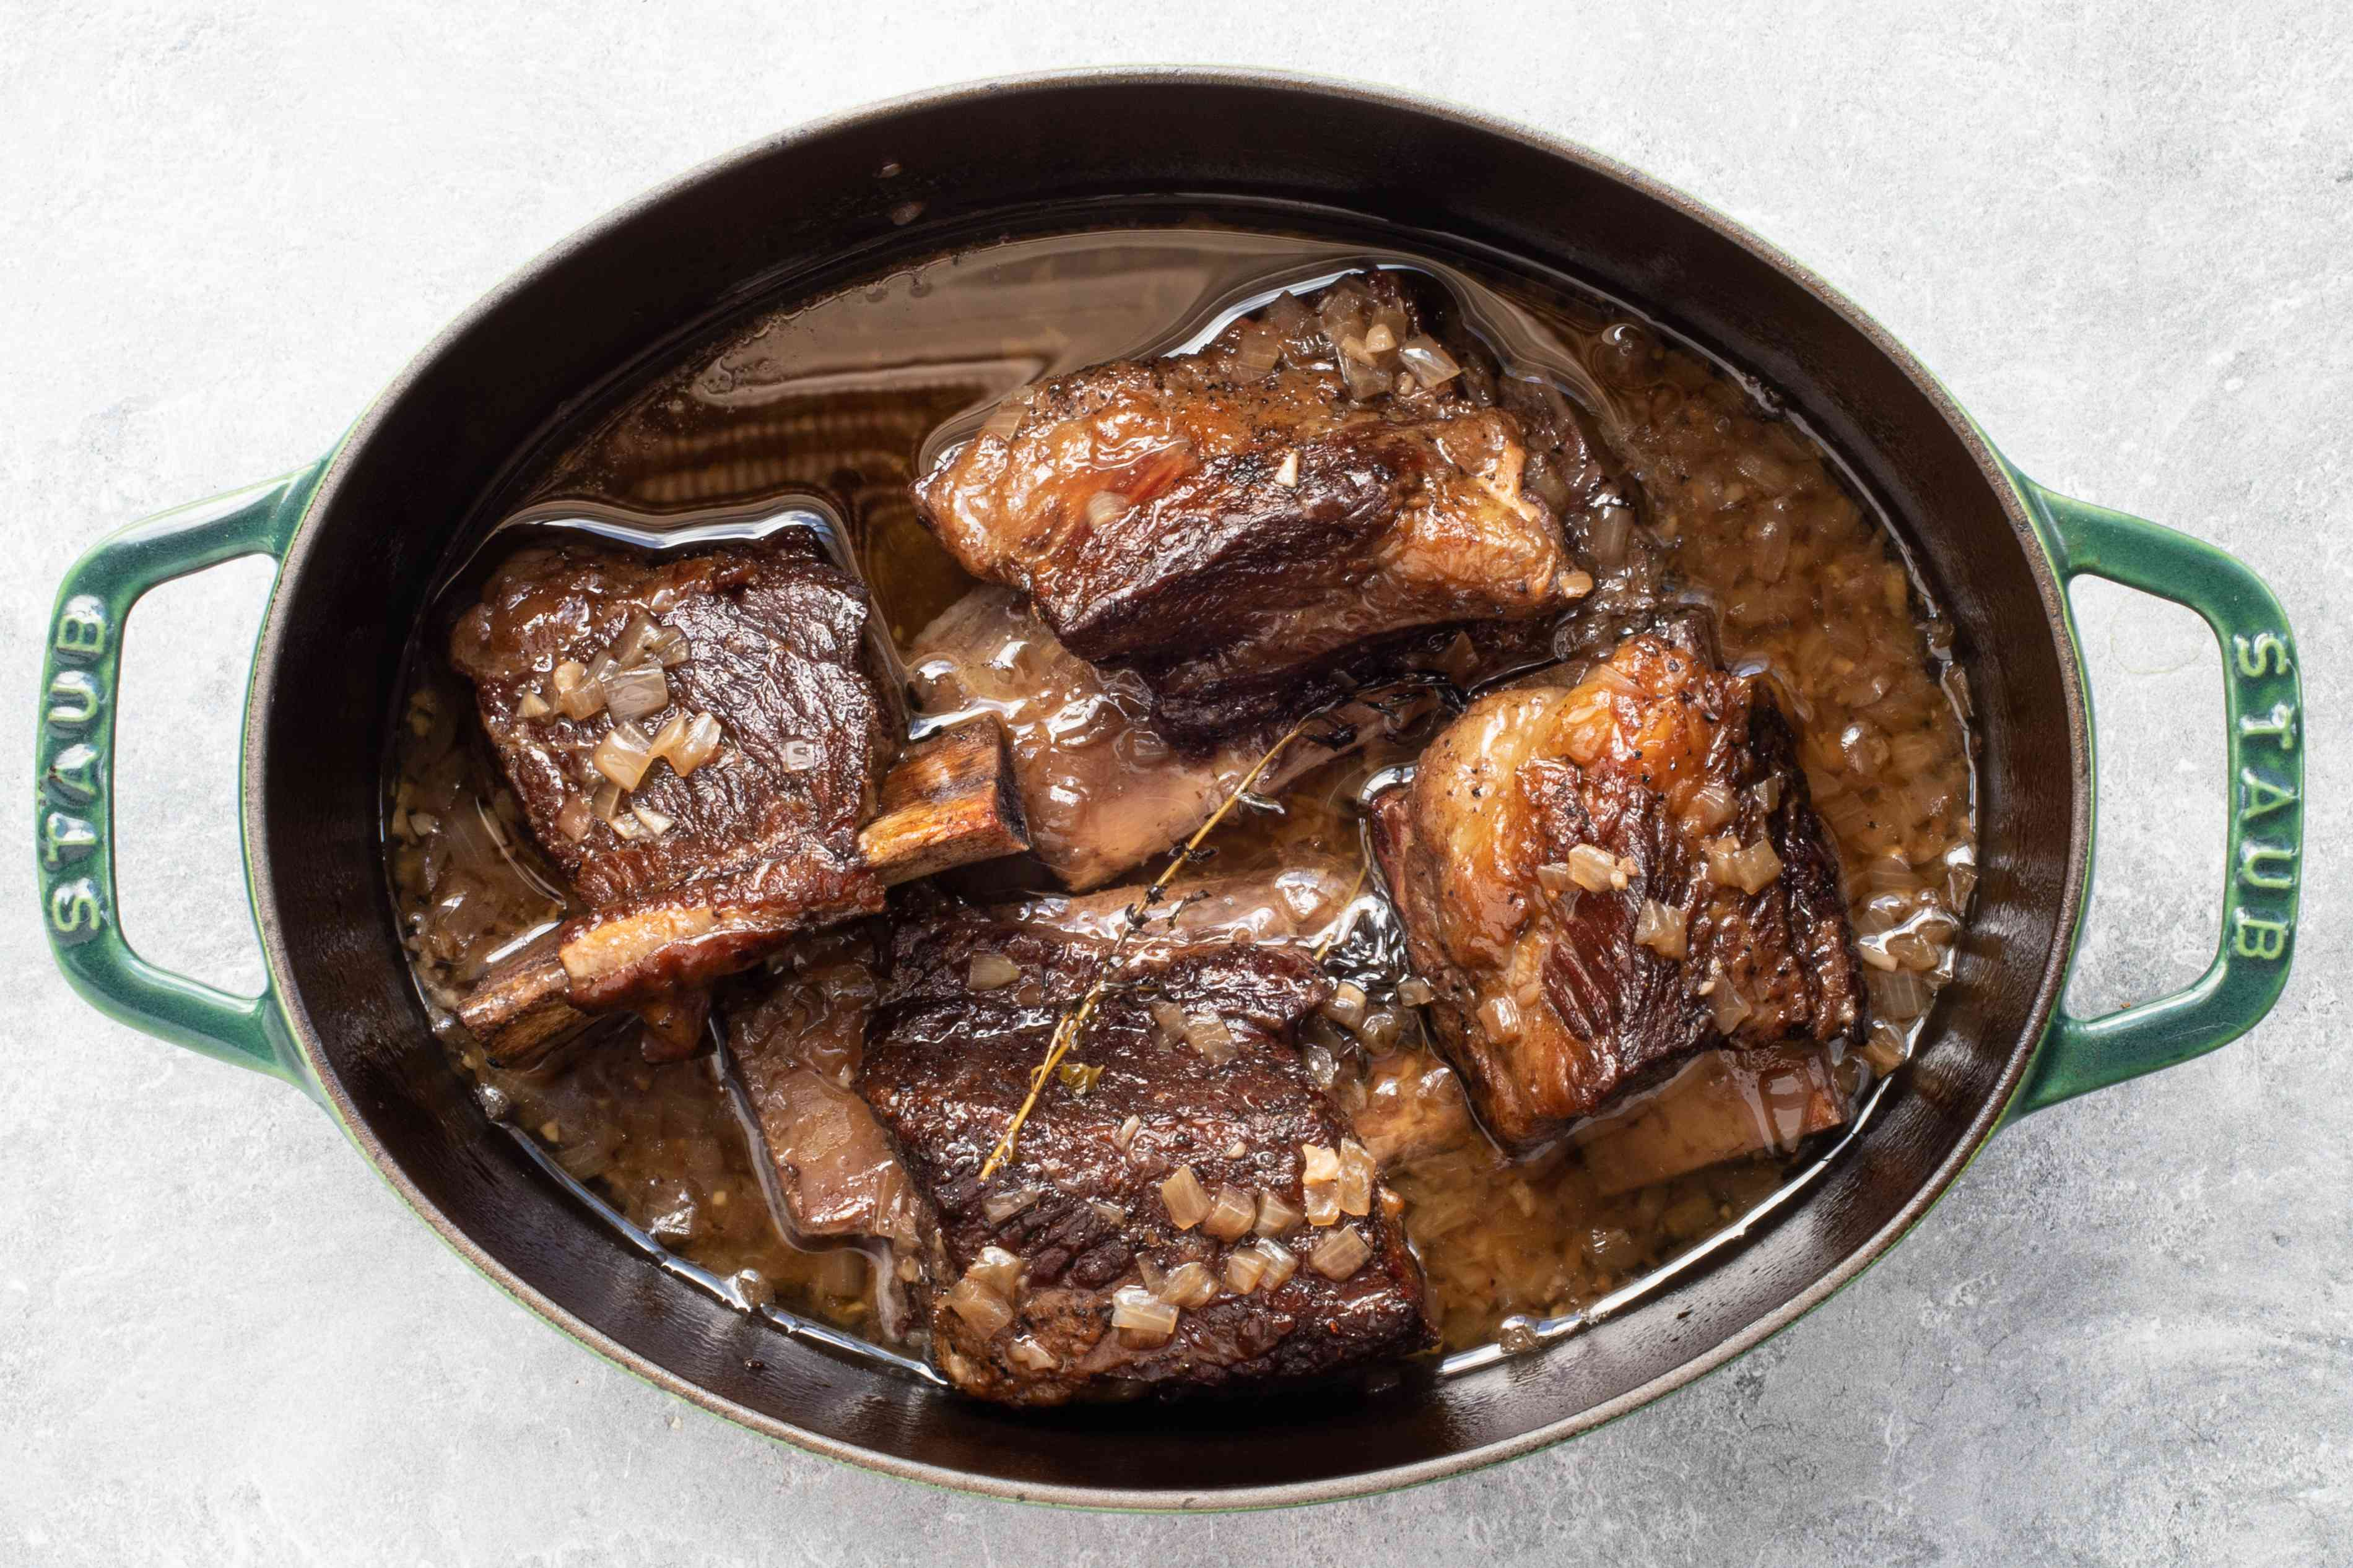 Dutch oven with braised beef short ribs